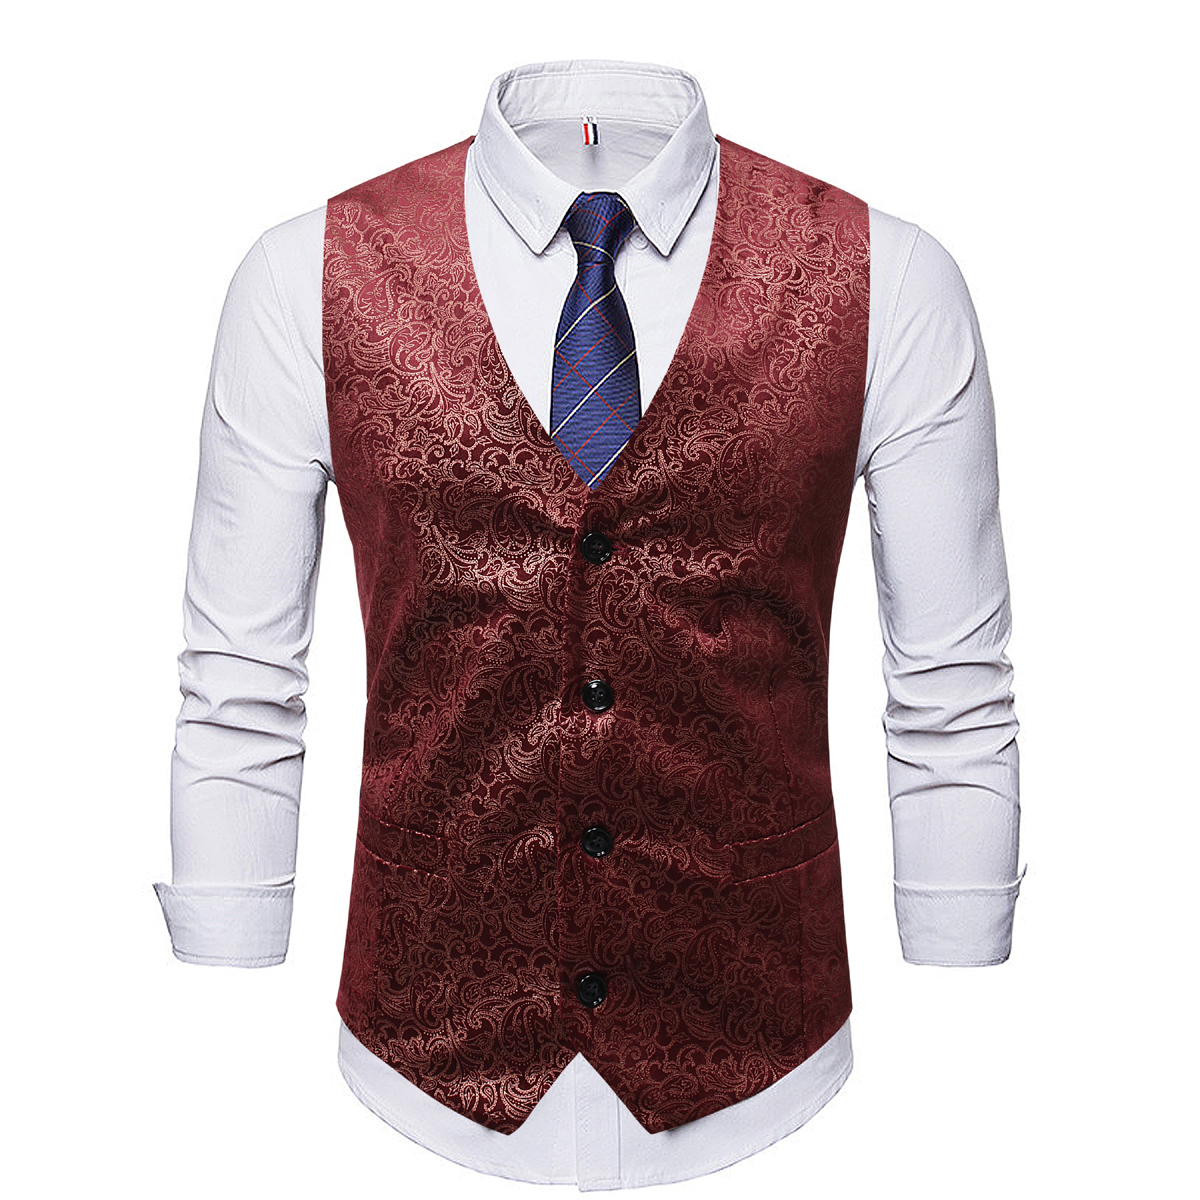 2019 Mens Suit Vest For Wedding Party Luxury Printed Sleeveless Waistcoat Formal Dress Vests For Mens Business Workwear Top